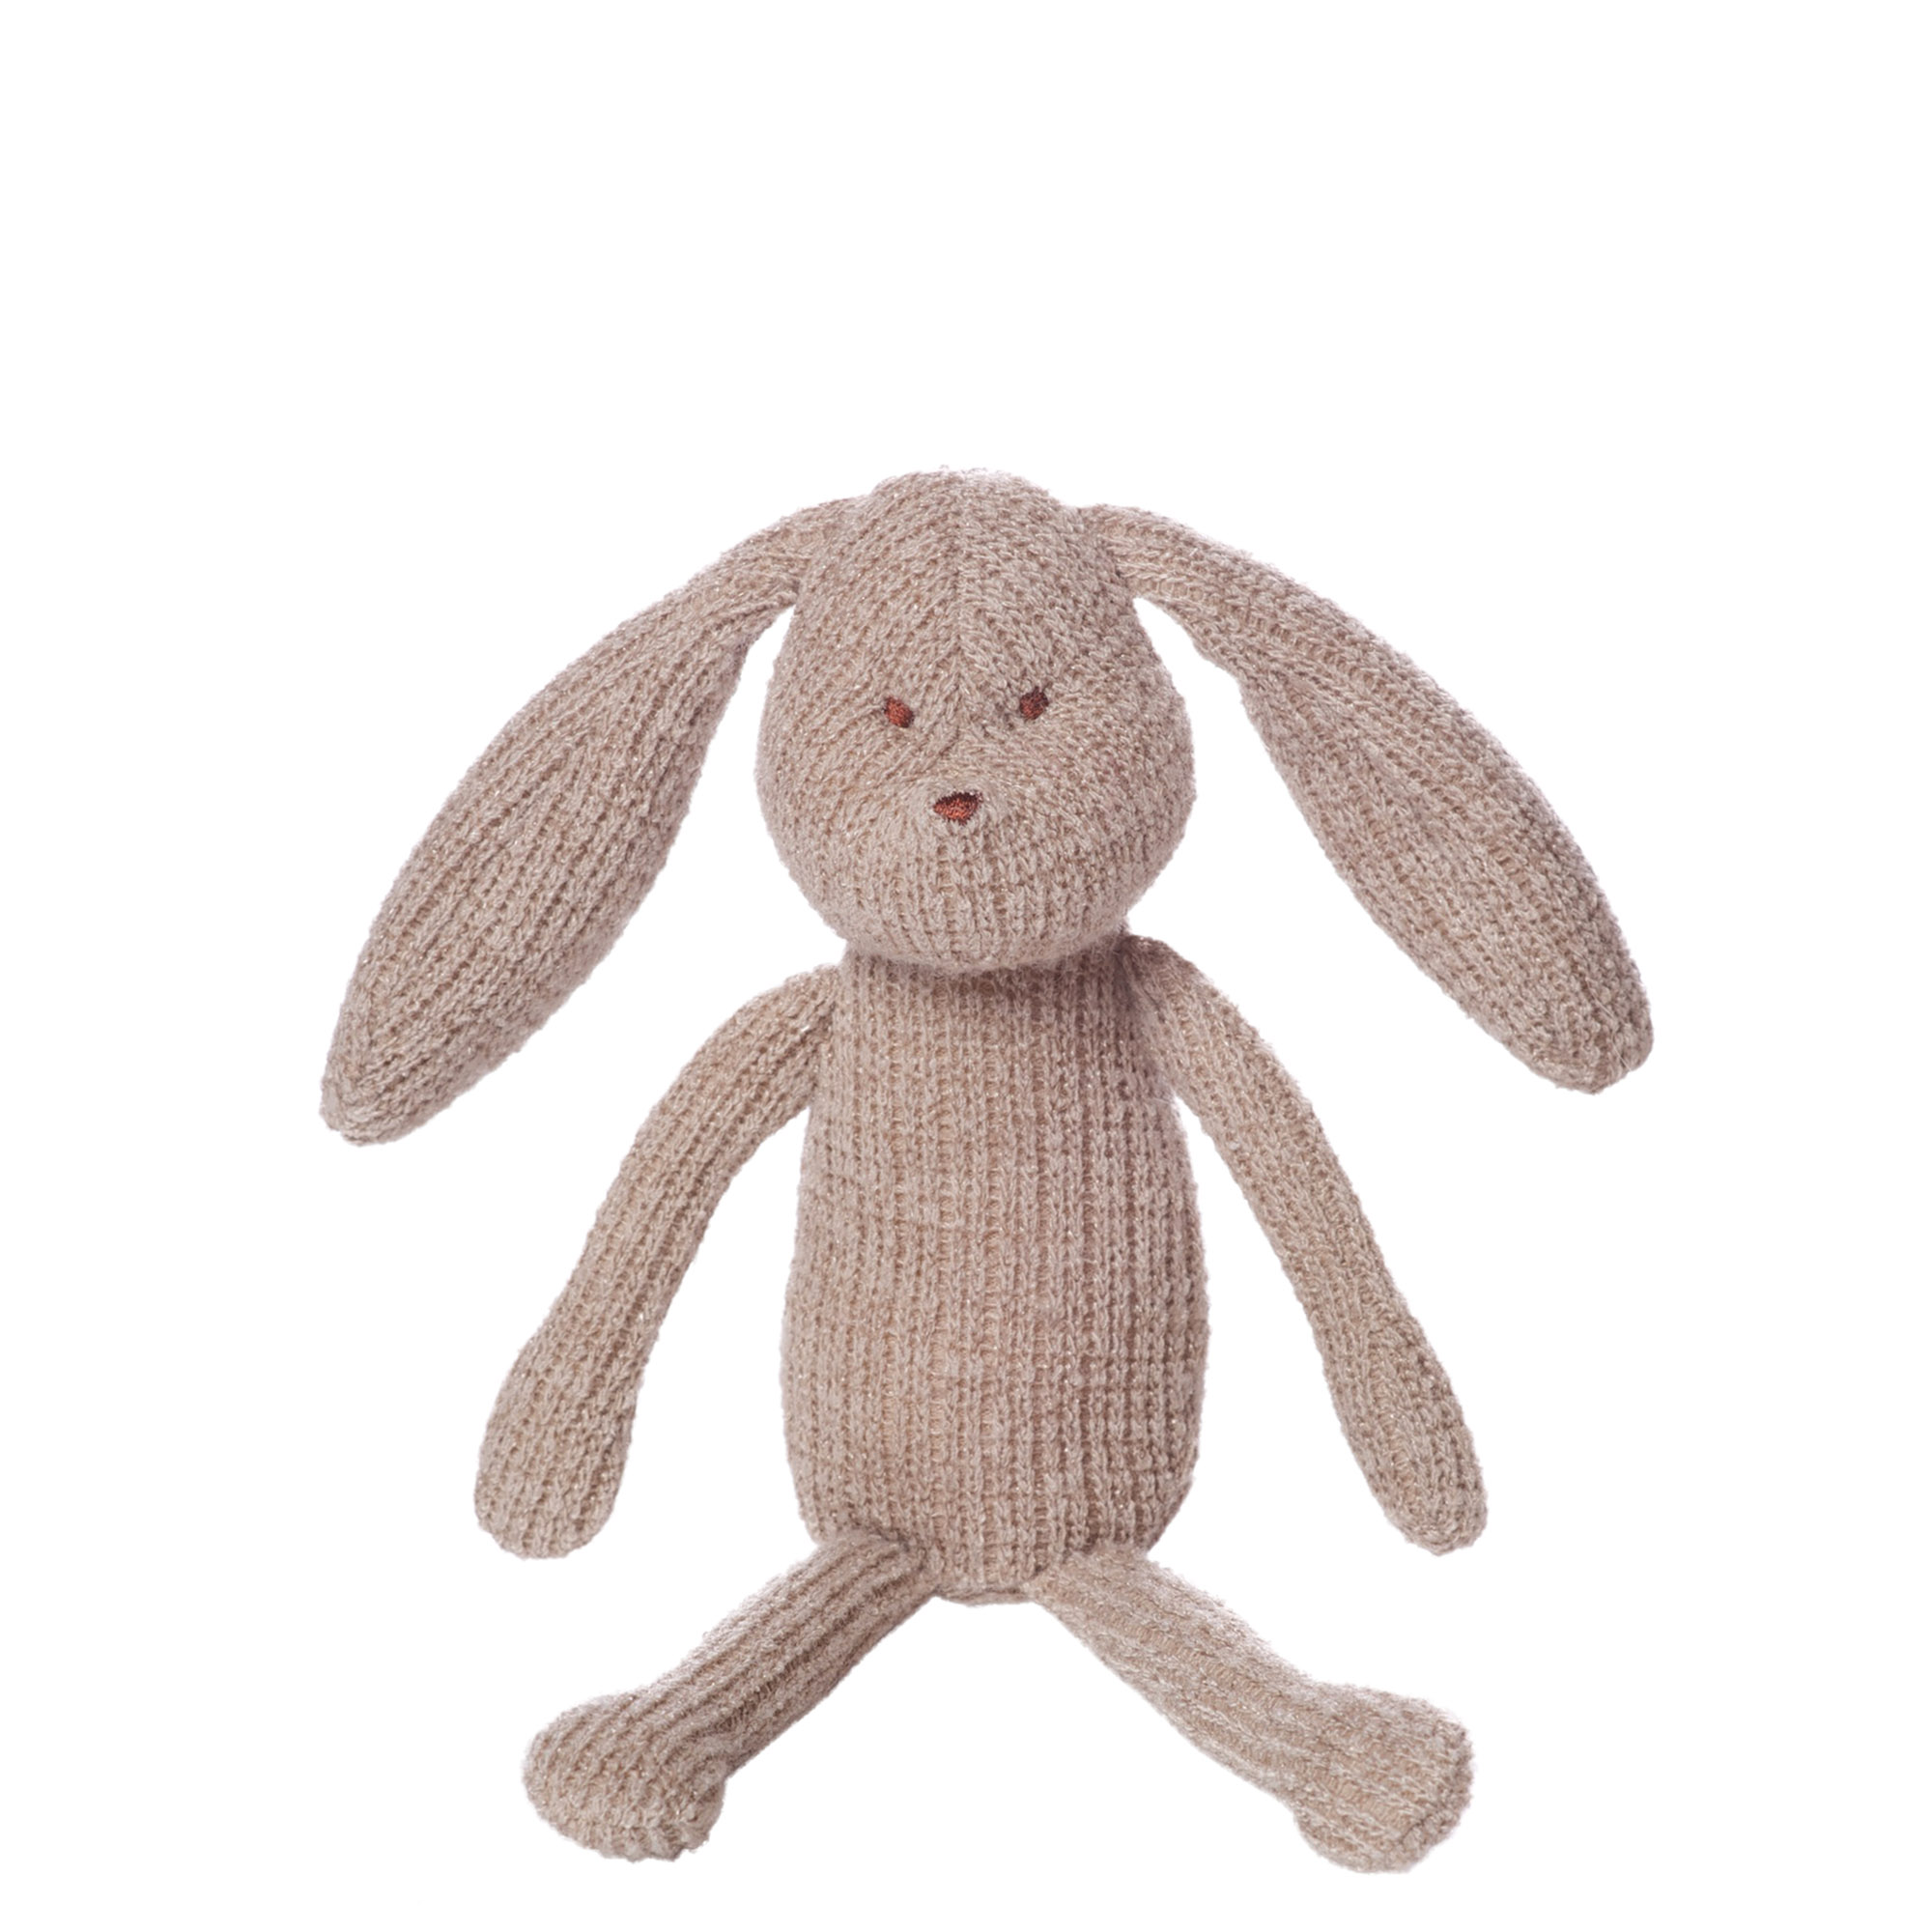 "Manhattan Toy Knits 5"" Clover Bunny Stuffed Animal"